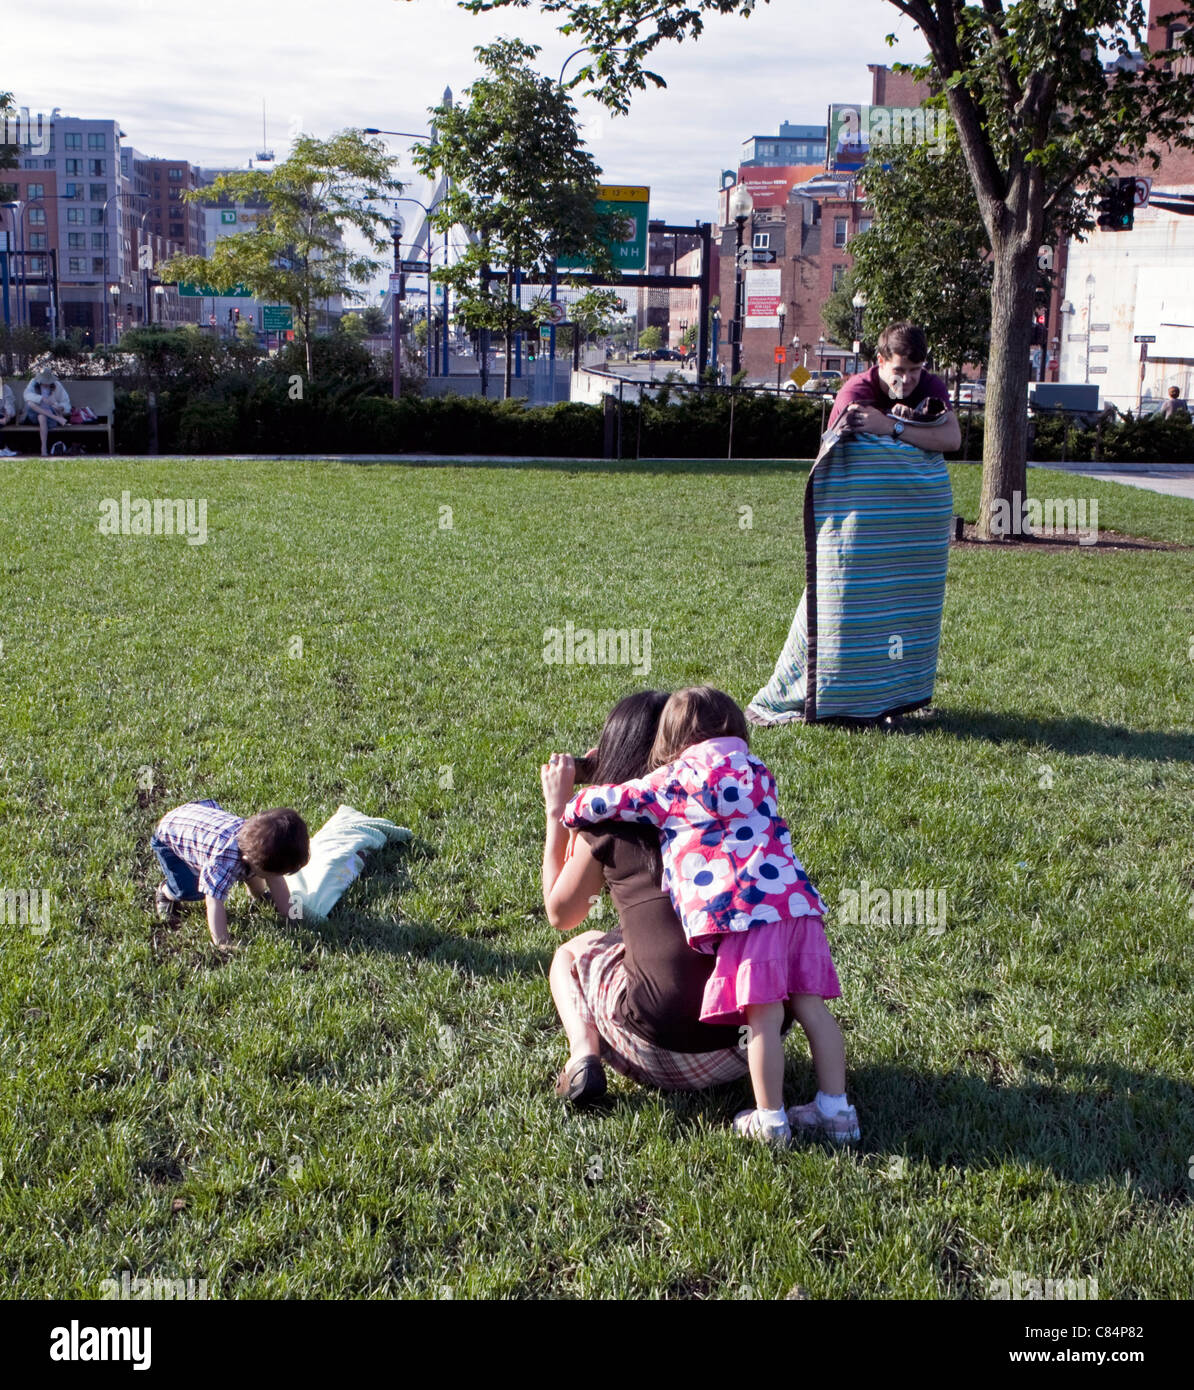 A family enjoys time together in North End Park in the Rose Kennedy Greenway in Boston. - Stock Image